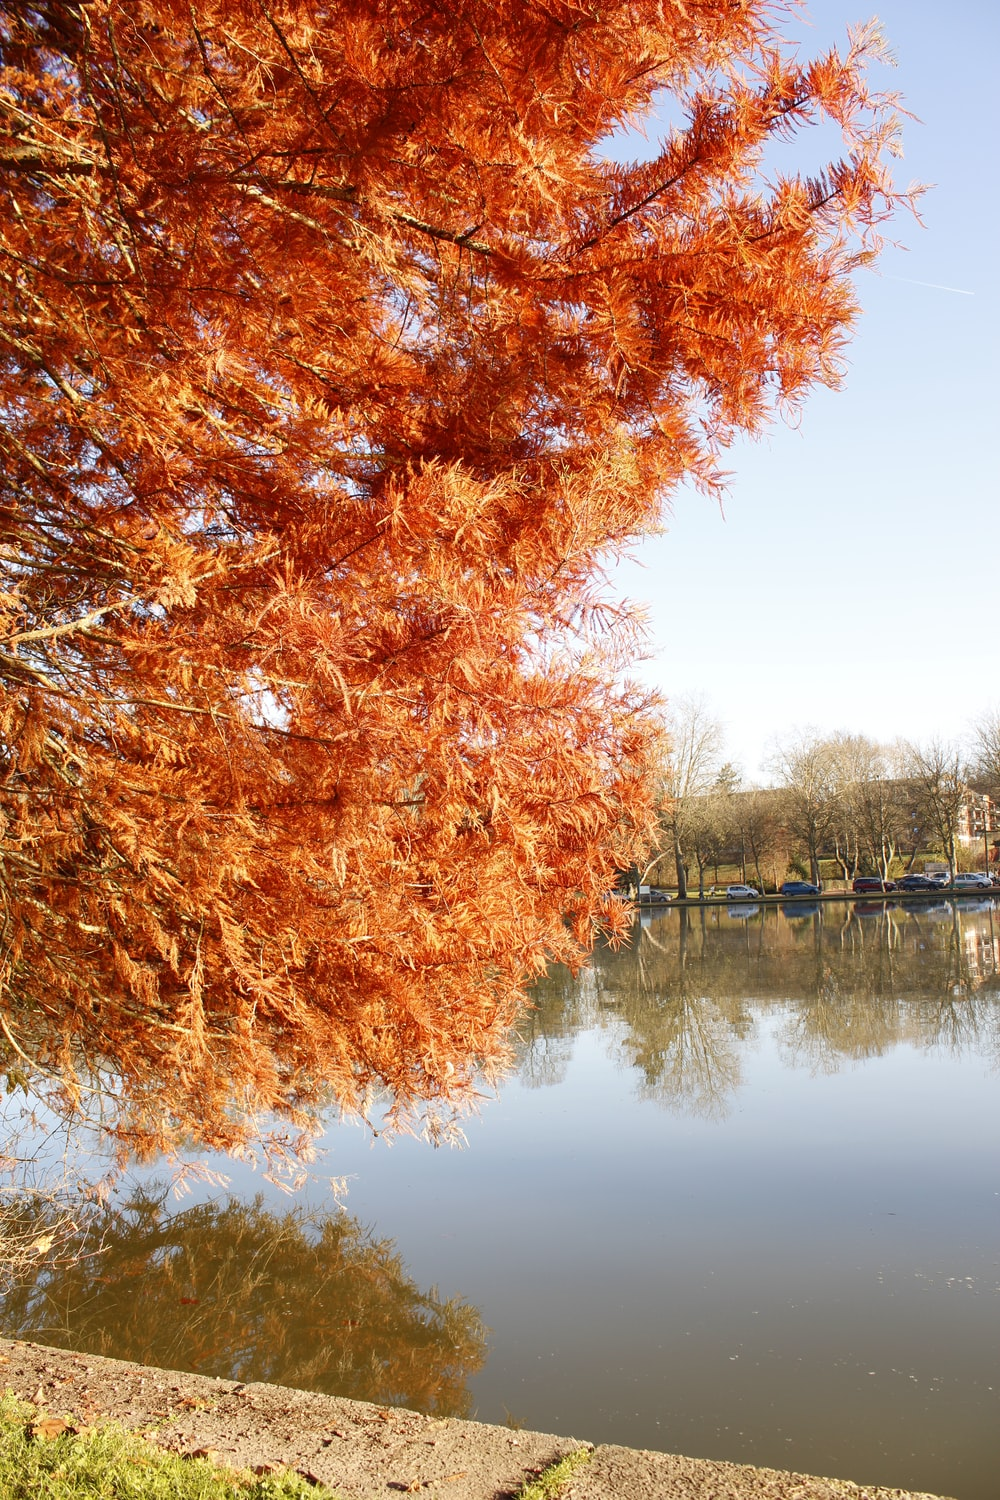 brown leaf trees near body of water during daytime